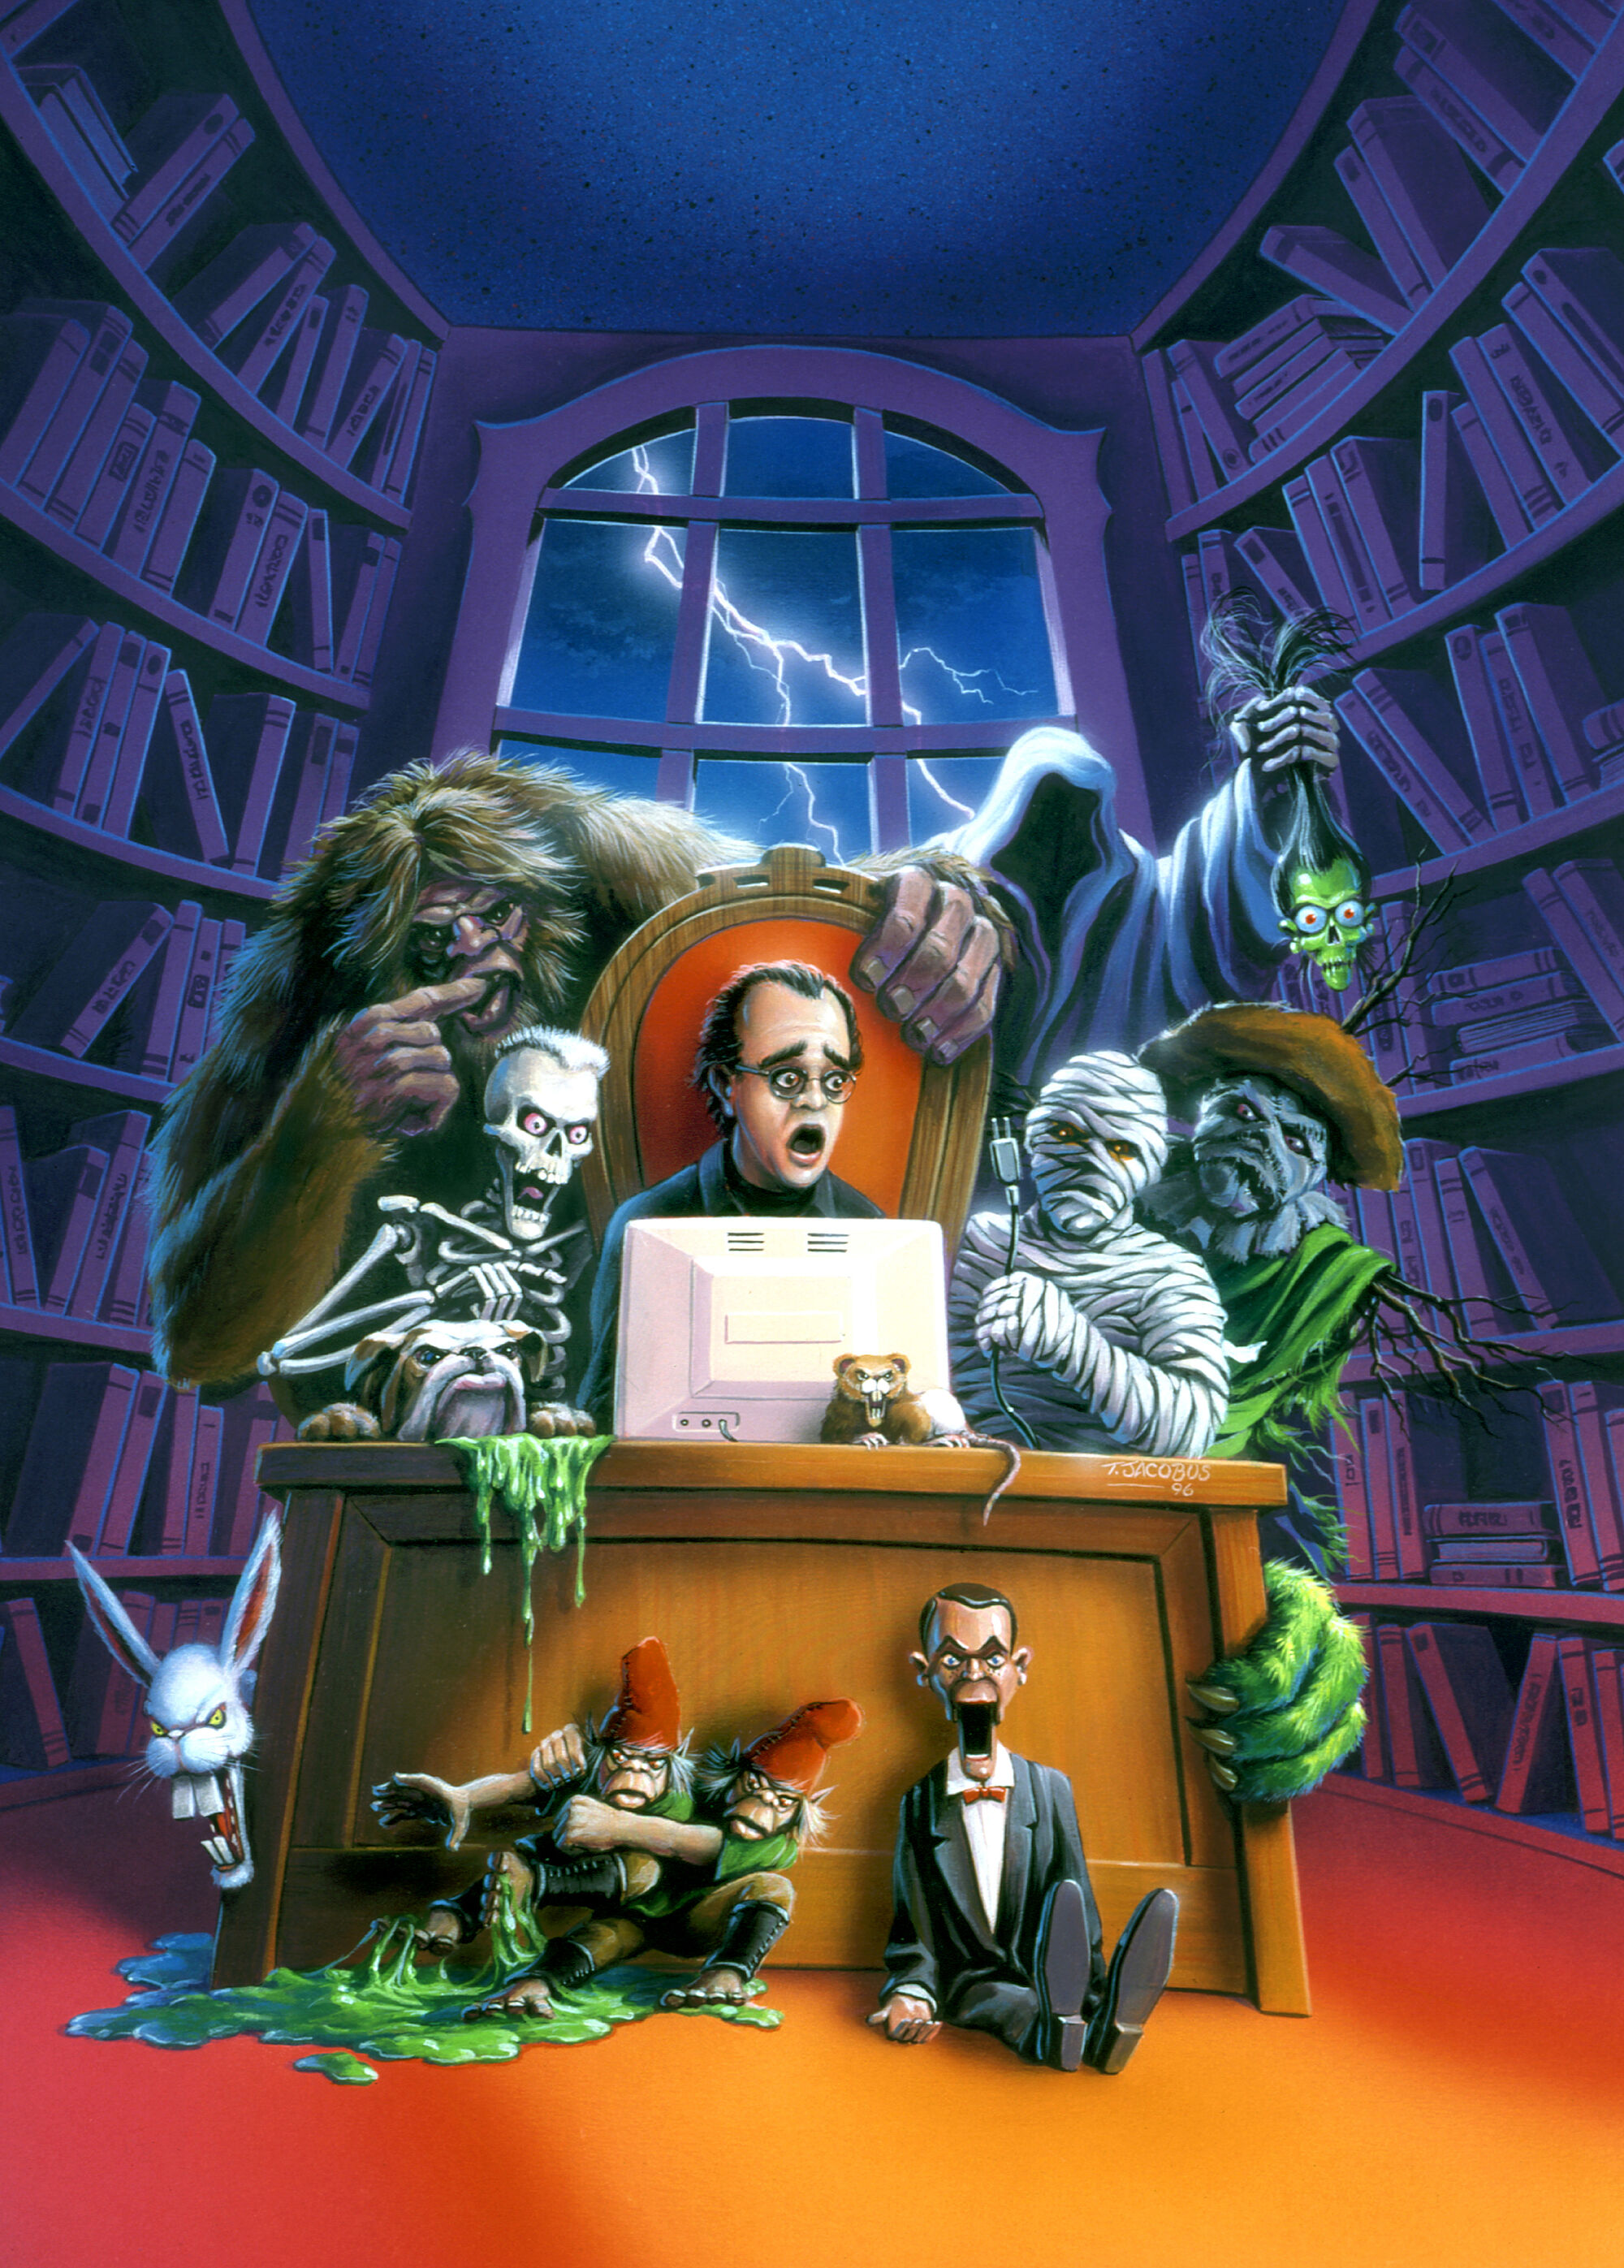 Monsters in the goosebumps franchise goosebumps wiki fandom monsters in the goosebumps franchise goosebumps wiki fandom powered by wikia ccuart Image collections